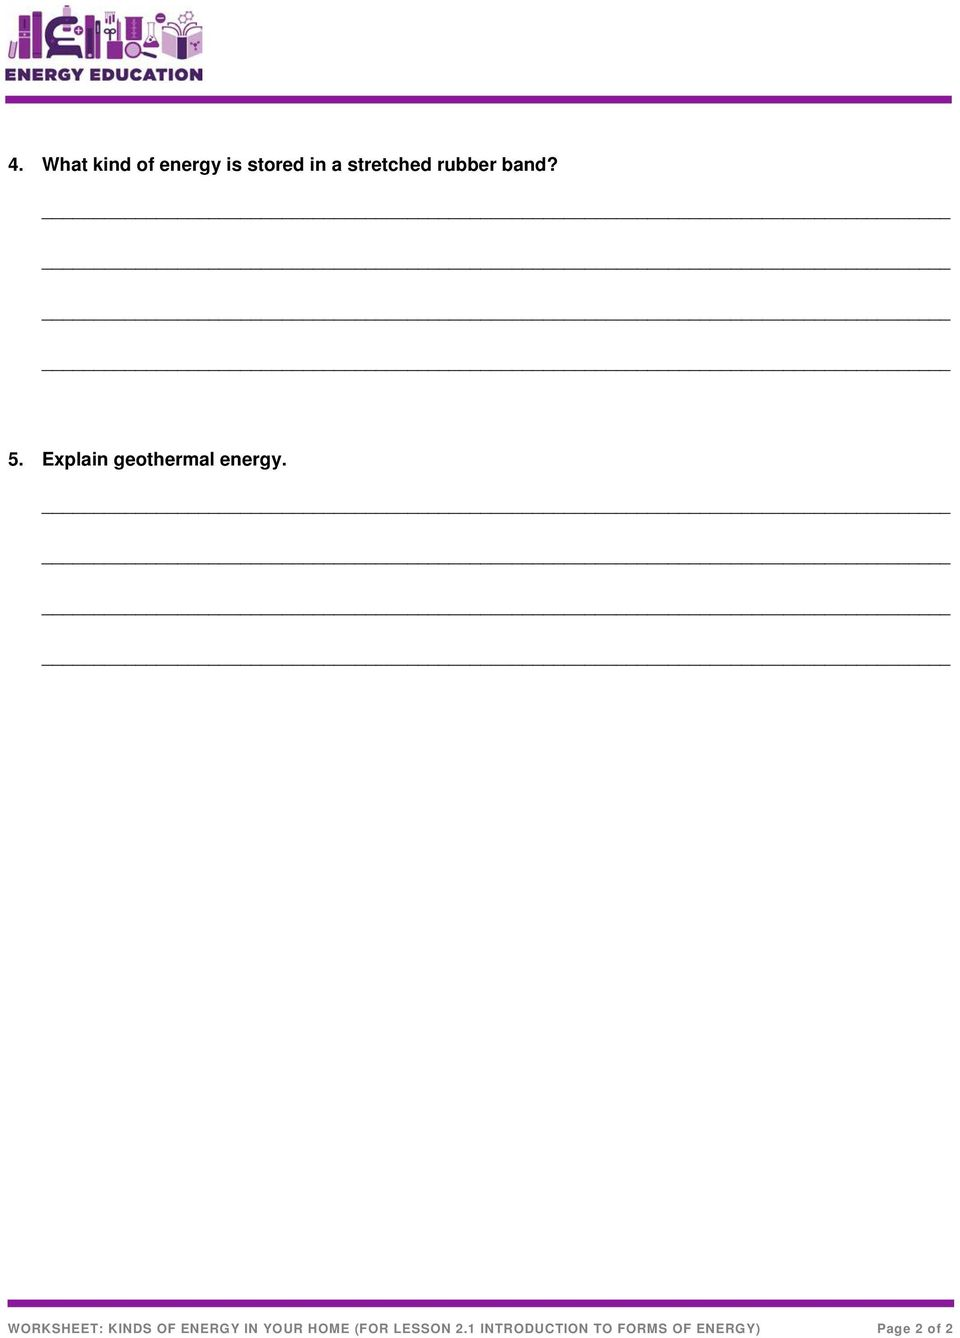 WORKSHEET: KINDS OF ENERGY IN YOUR HOME (FOR